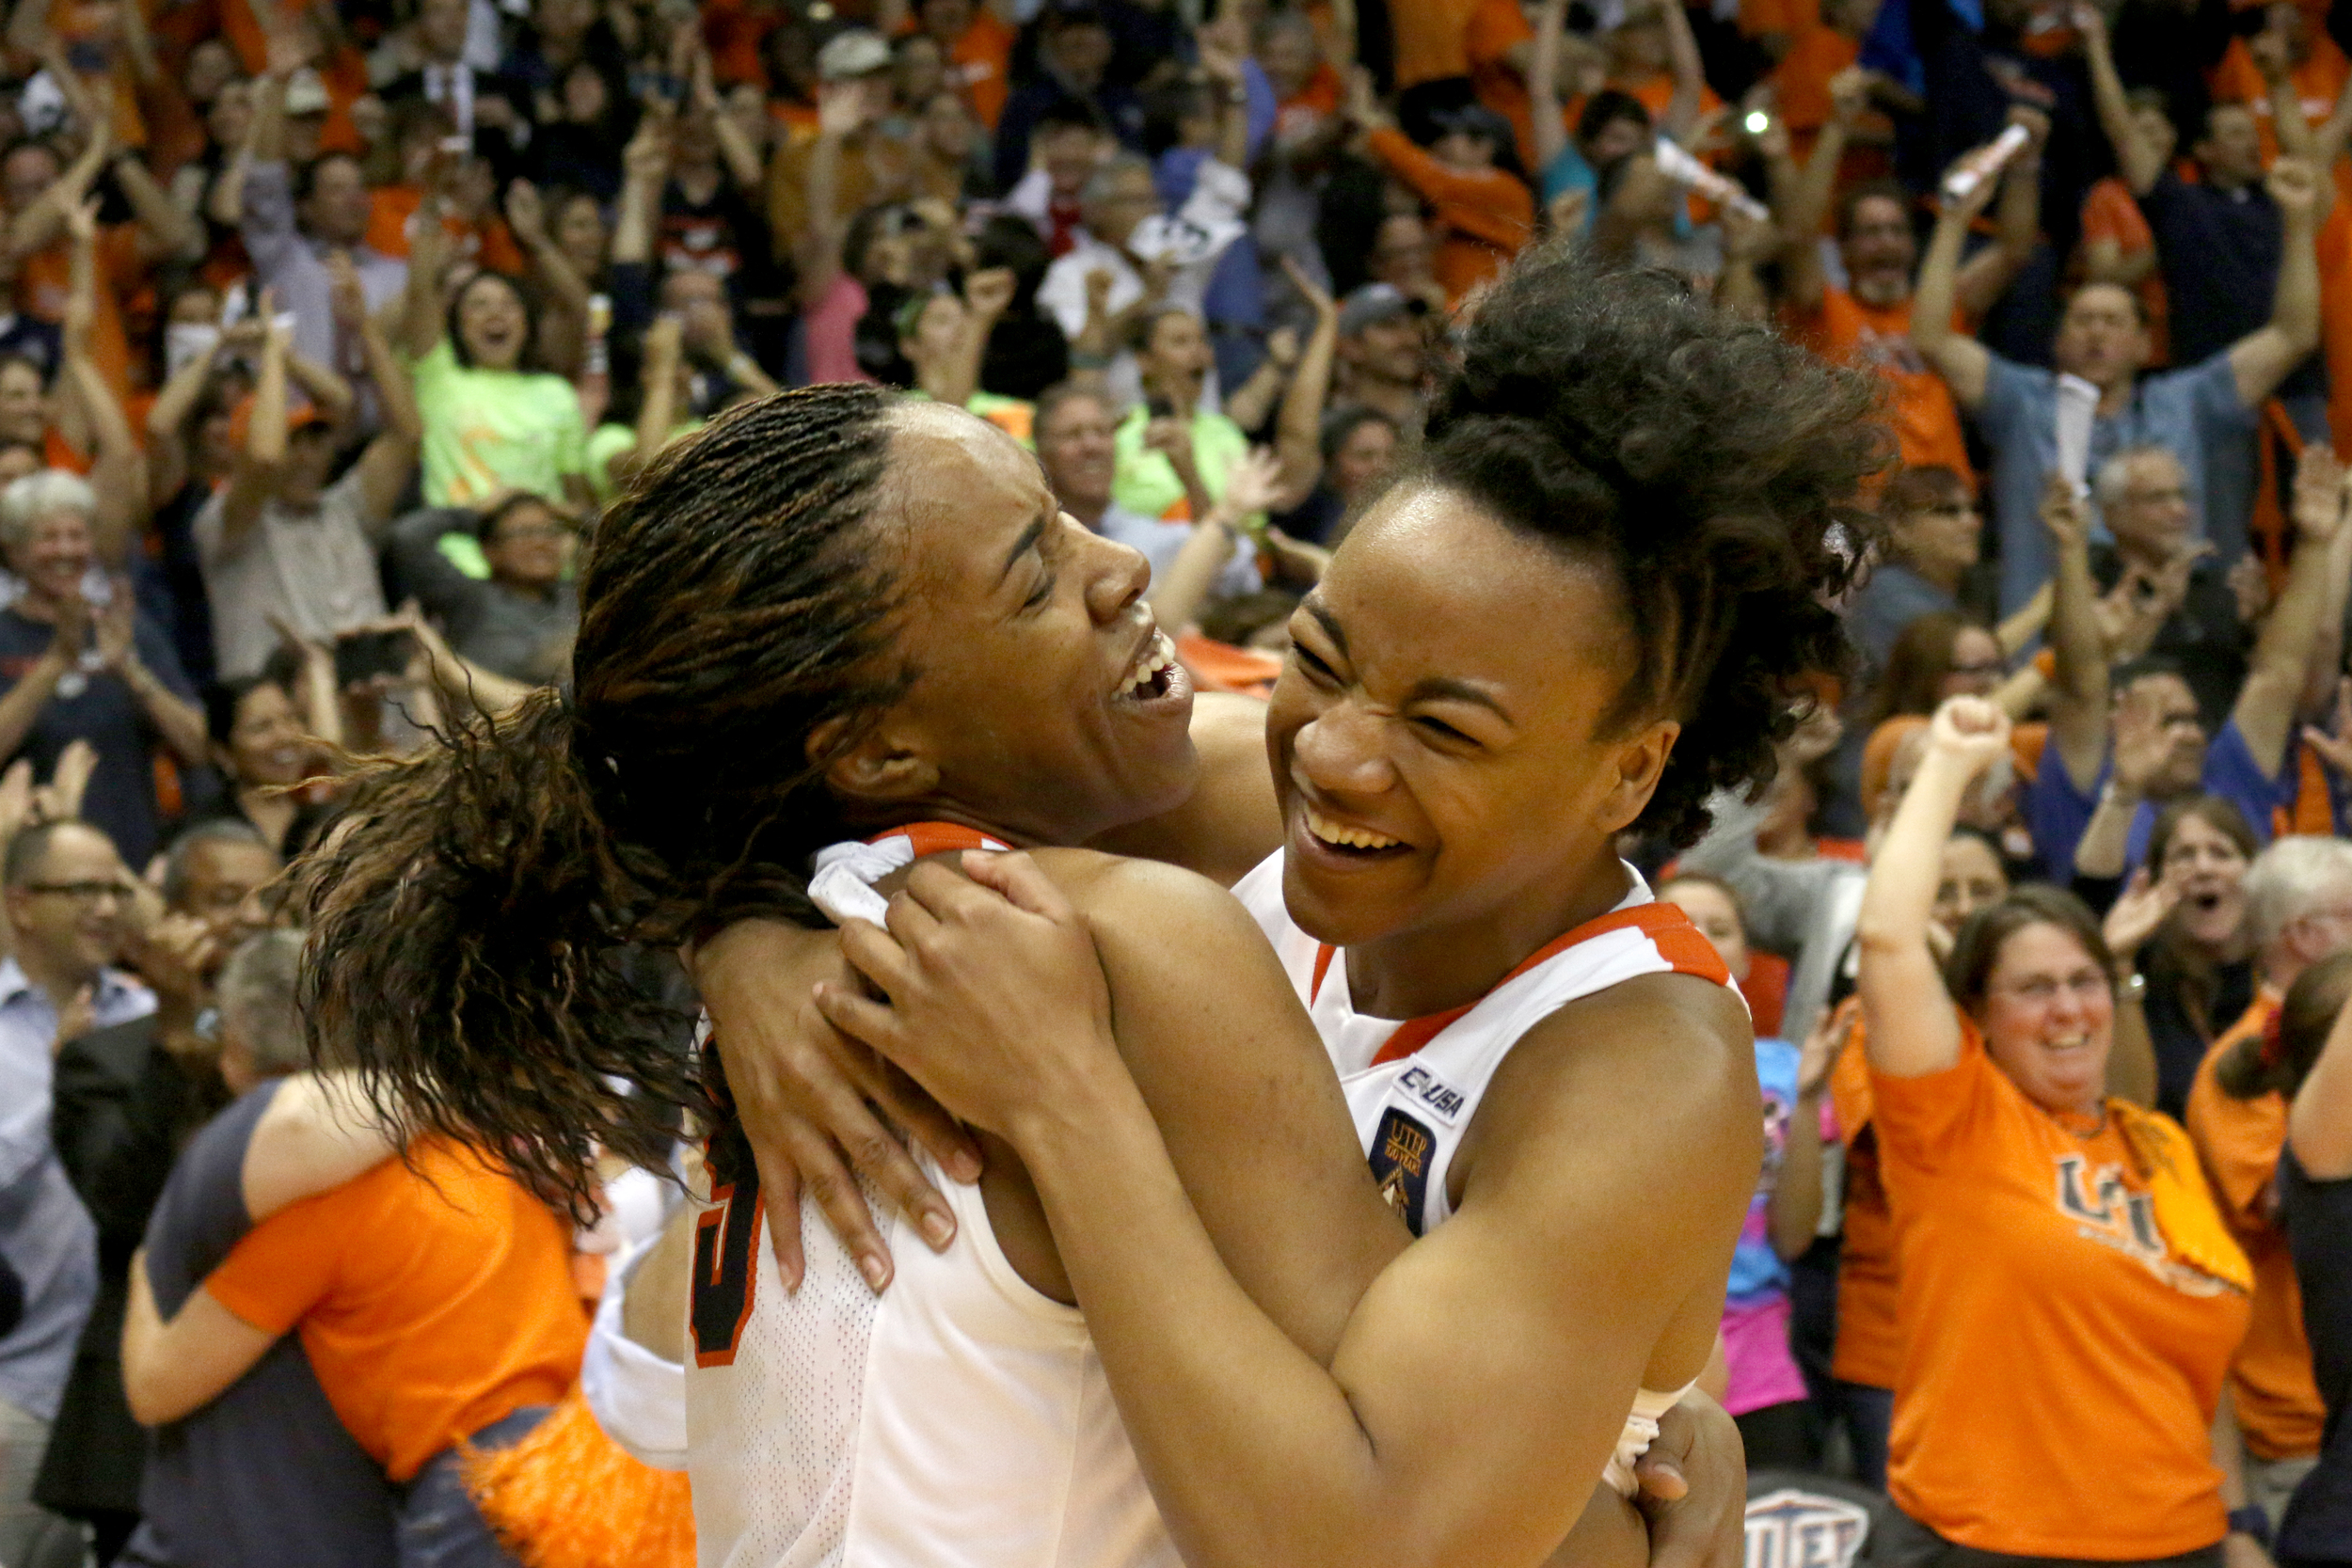 Senior forward Kayla Thornton and sophomore guard Jenzel Nash celebrate their win over South Dakota State, which advanced them to the 2014 WNIT championship game in El Paso, Texas on April 2, 2014.